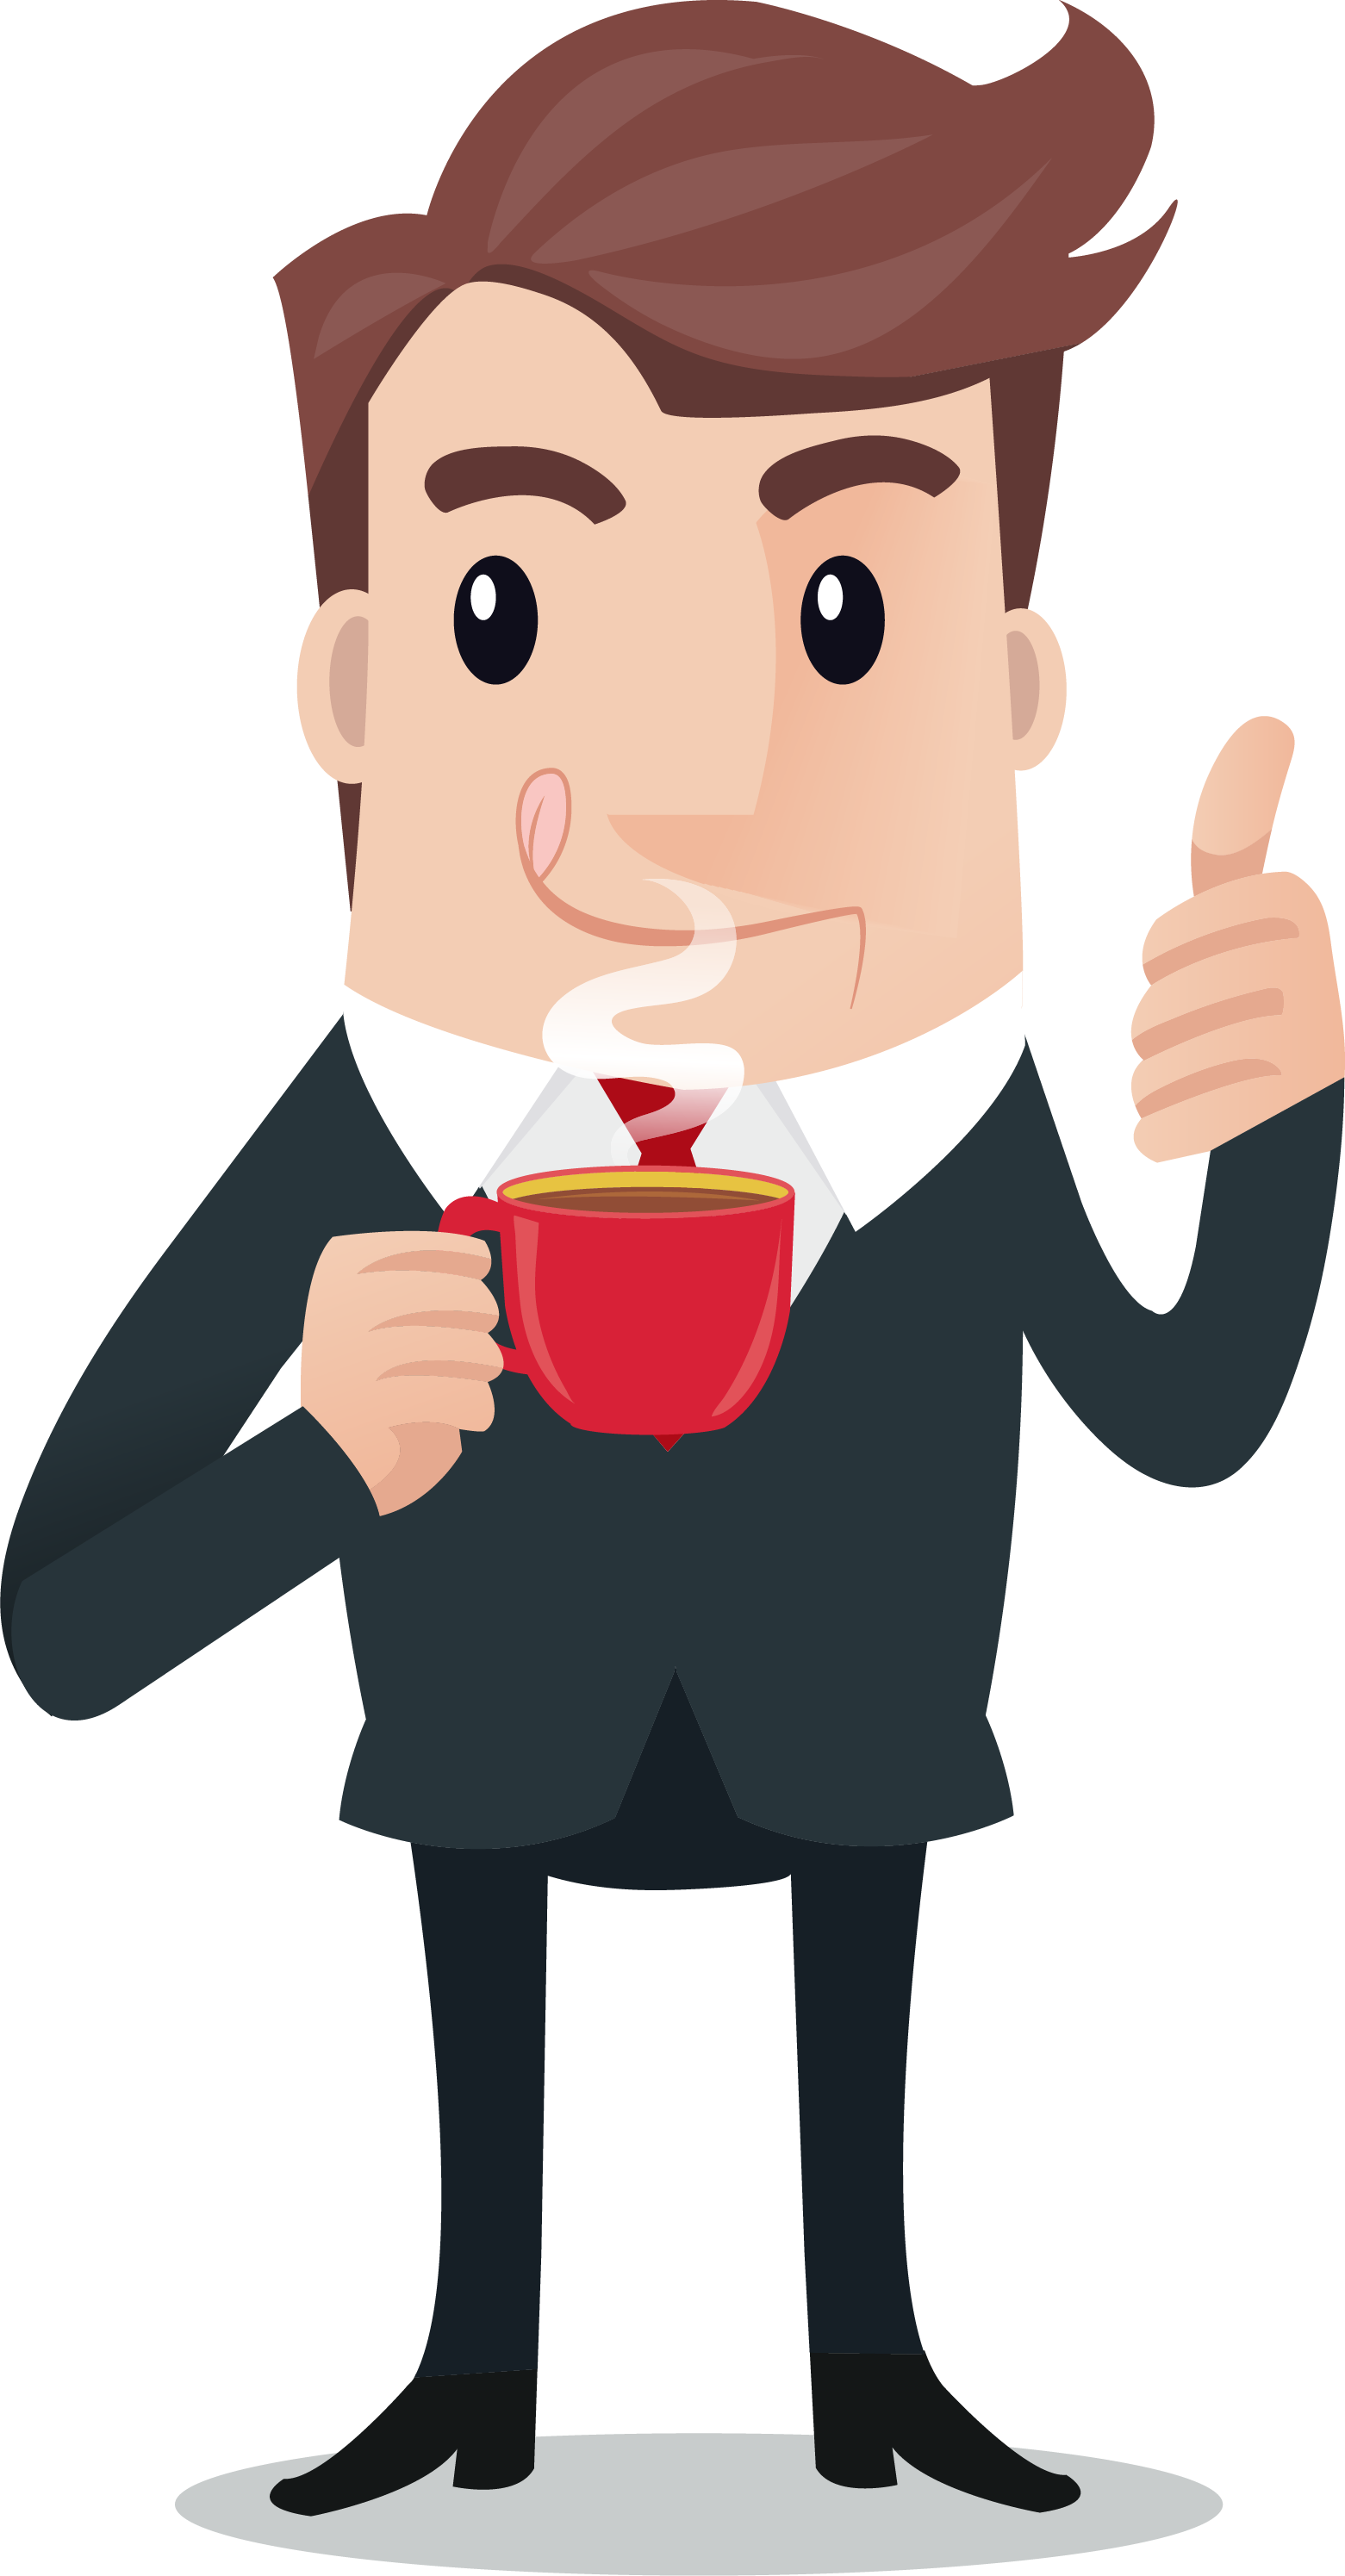 Coffee clipart man, Coffee man Transparent FREE for download.